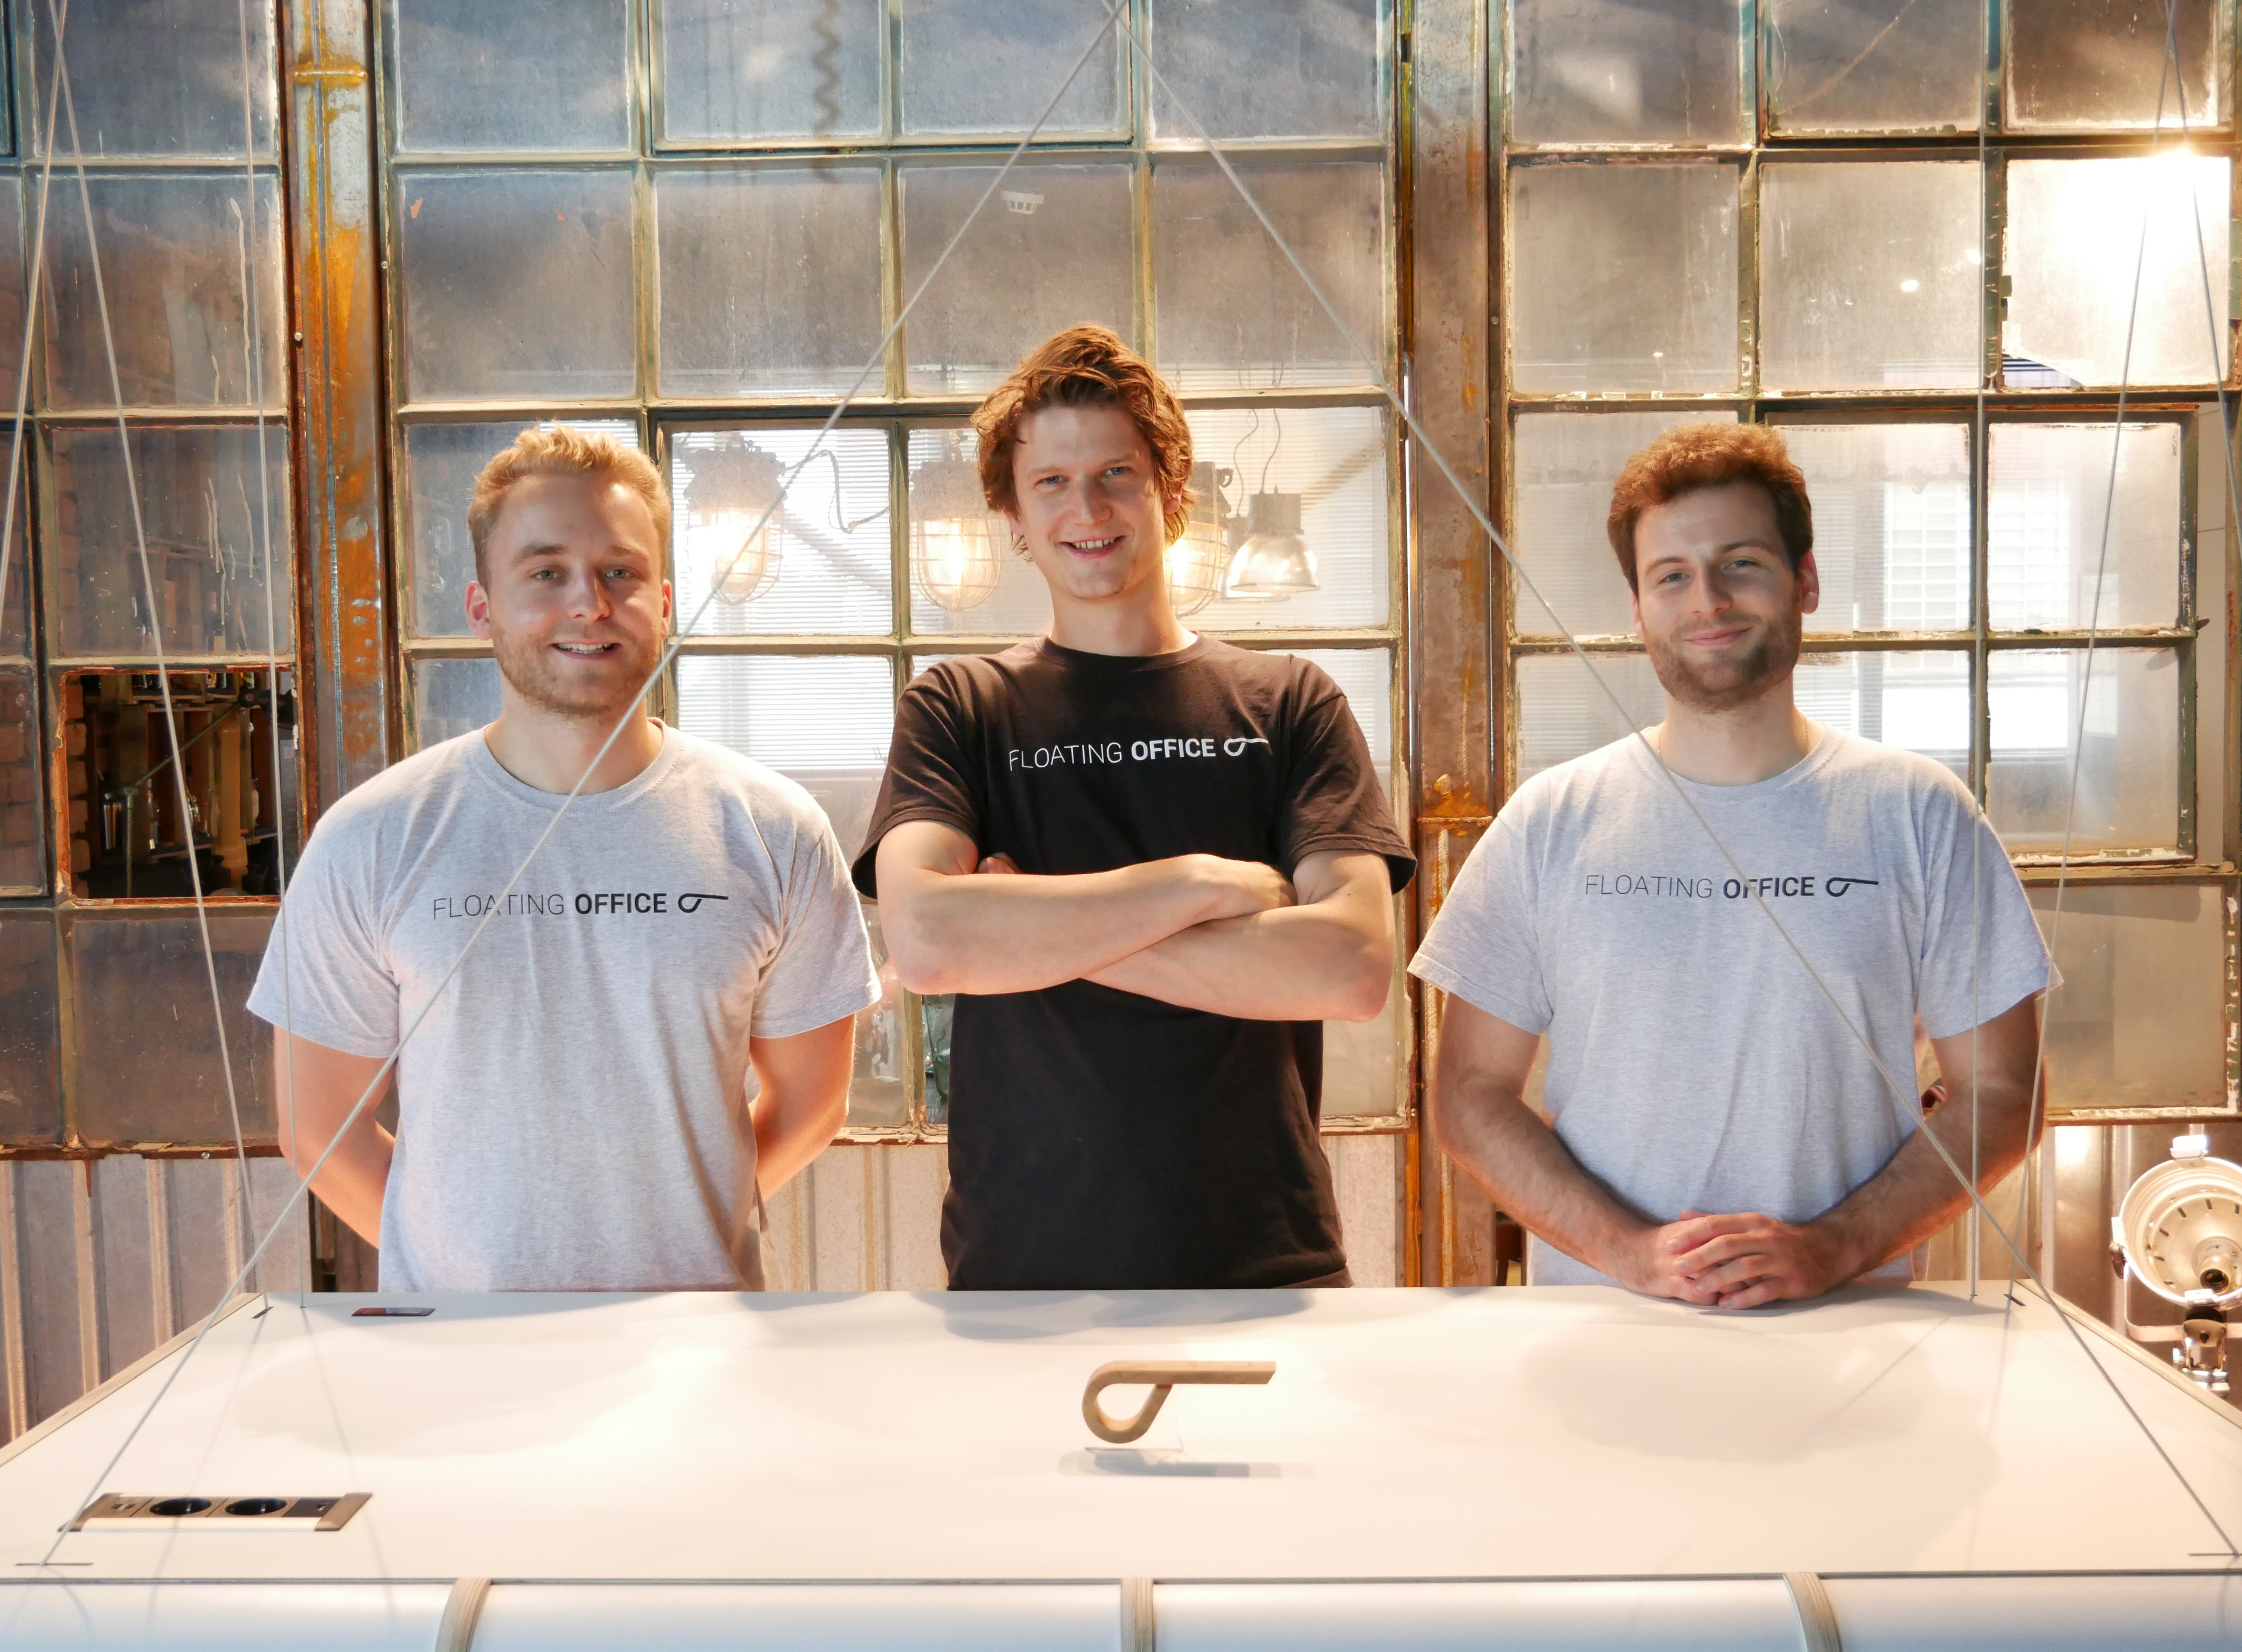 From left to right: the three founders, Florian von Heißen, Philipp Overath and Maciej Walasek from Floating Office. © Floating Office